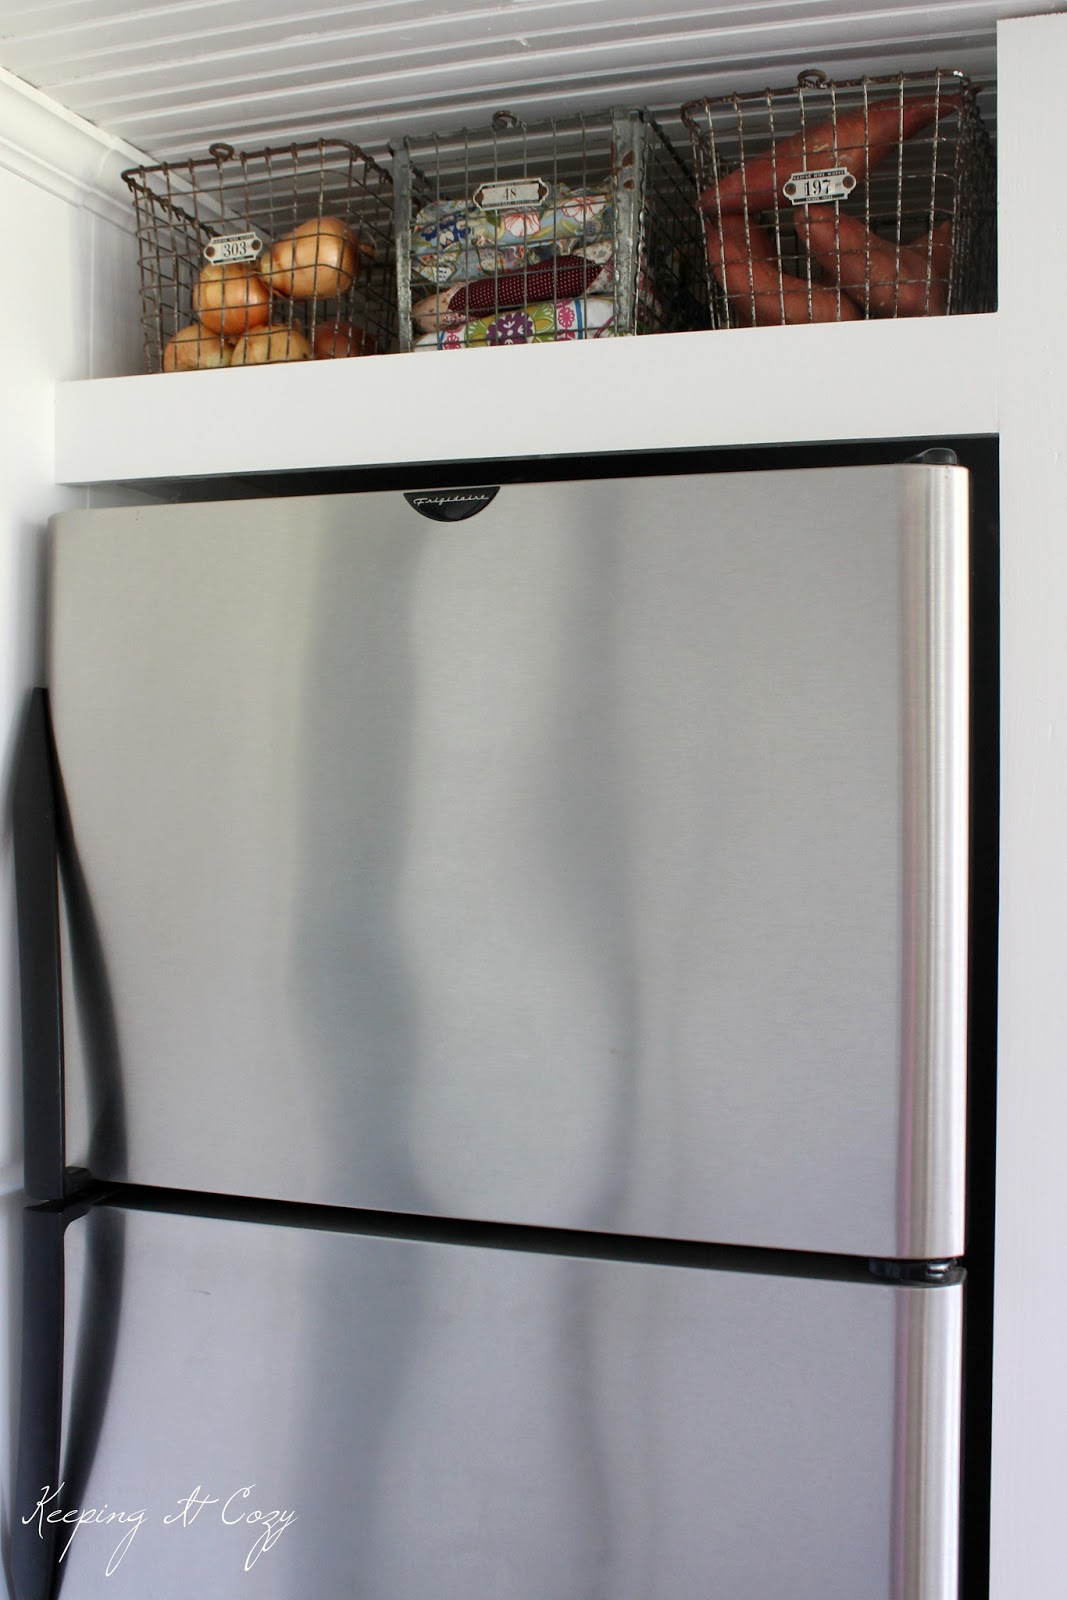 I Really Wanted An Open Shelf Above The Refrigerator For Extra Storage A Weeks Puzzled Over What Kind Of Baskets To Put On Upper